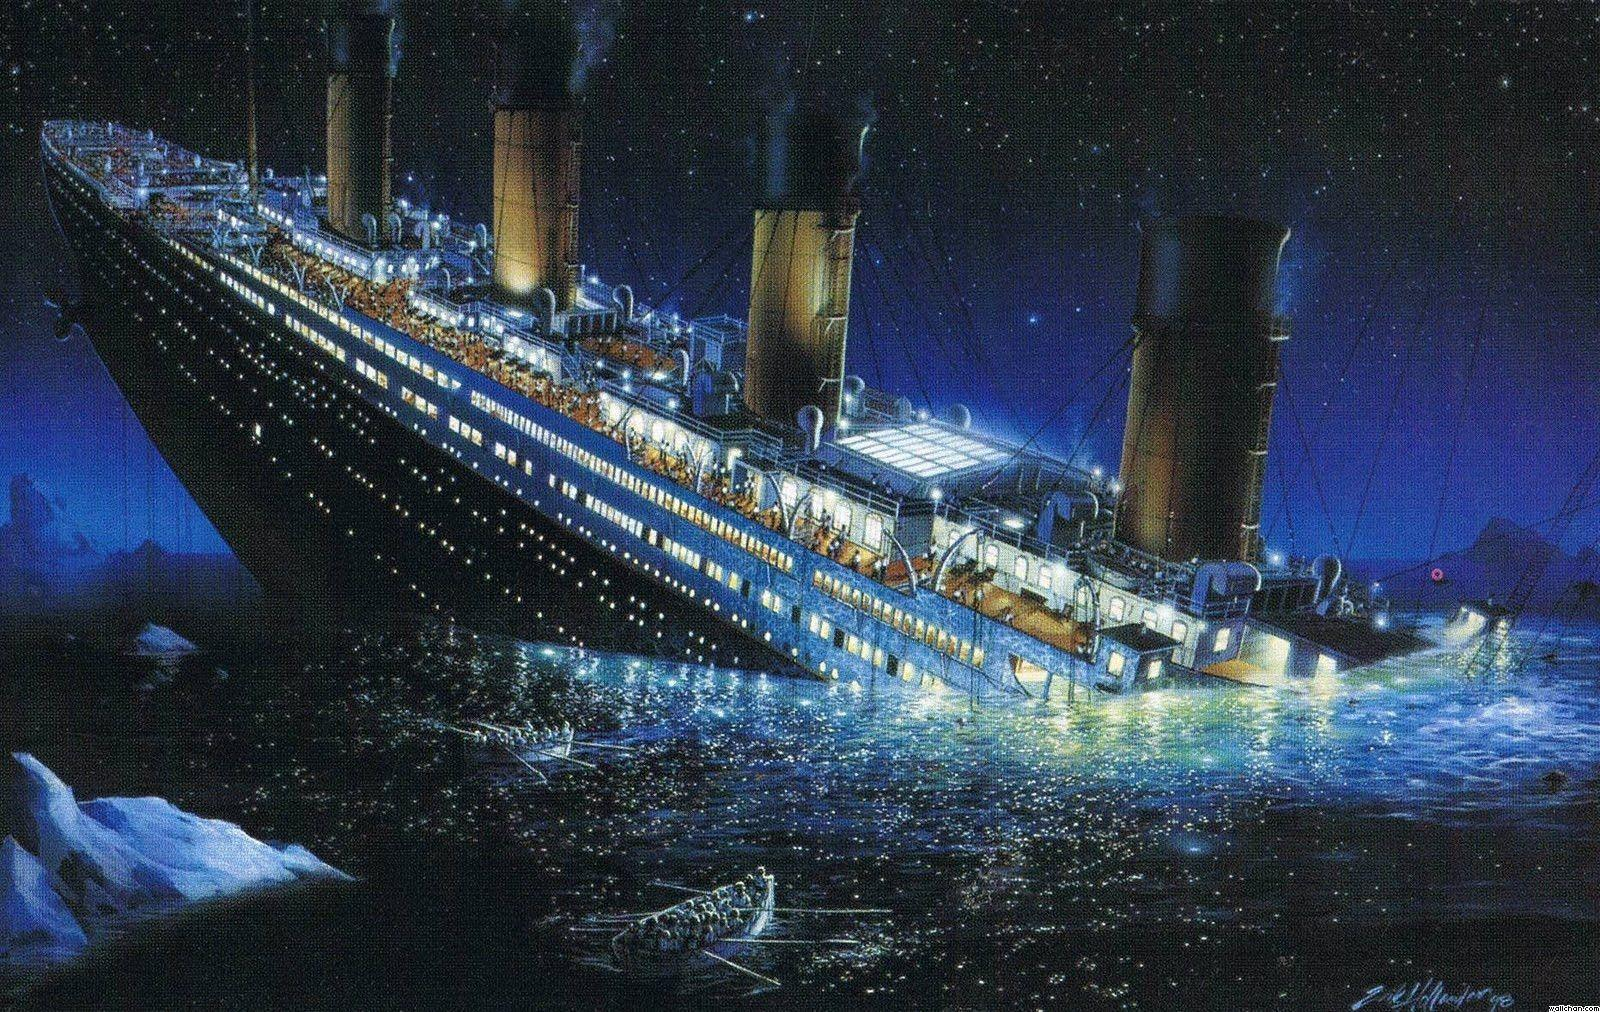 false facts about the titanic